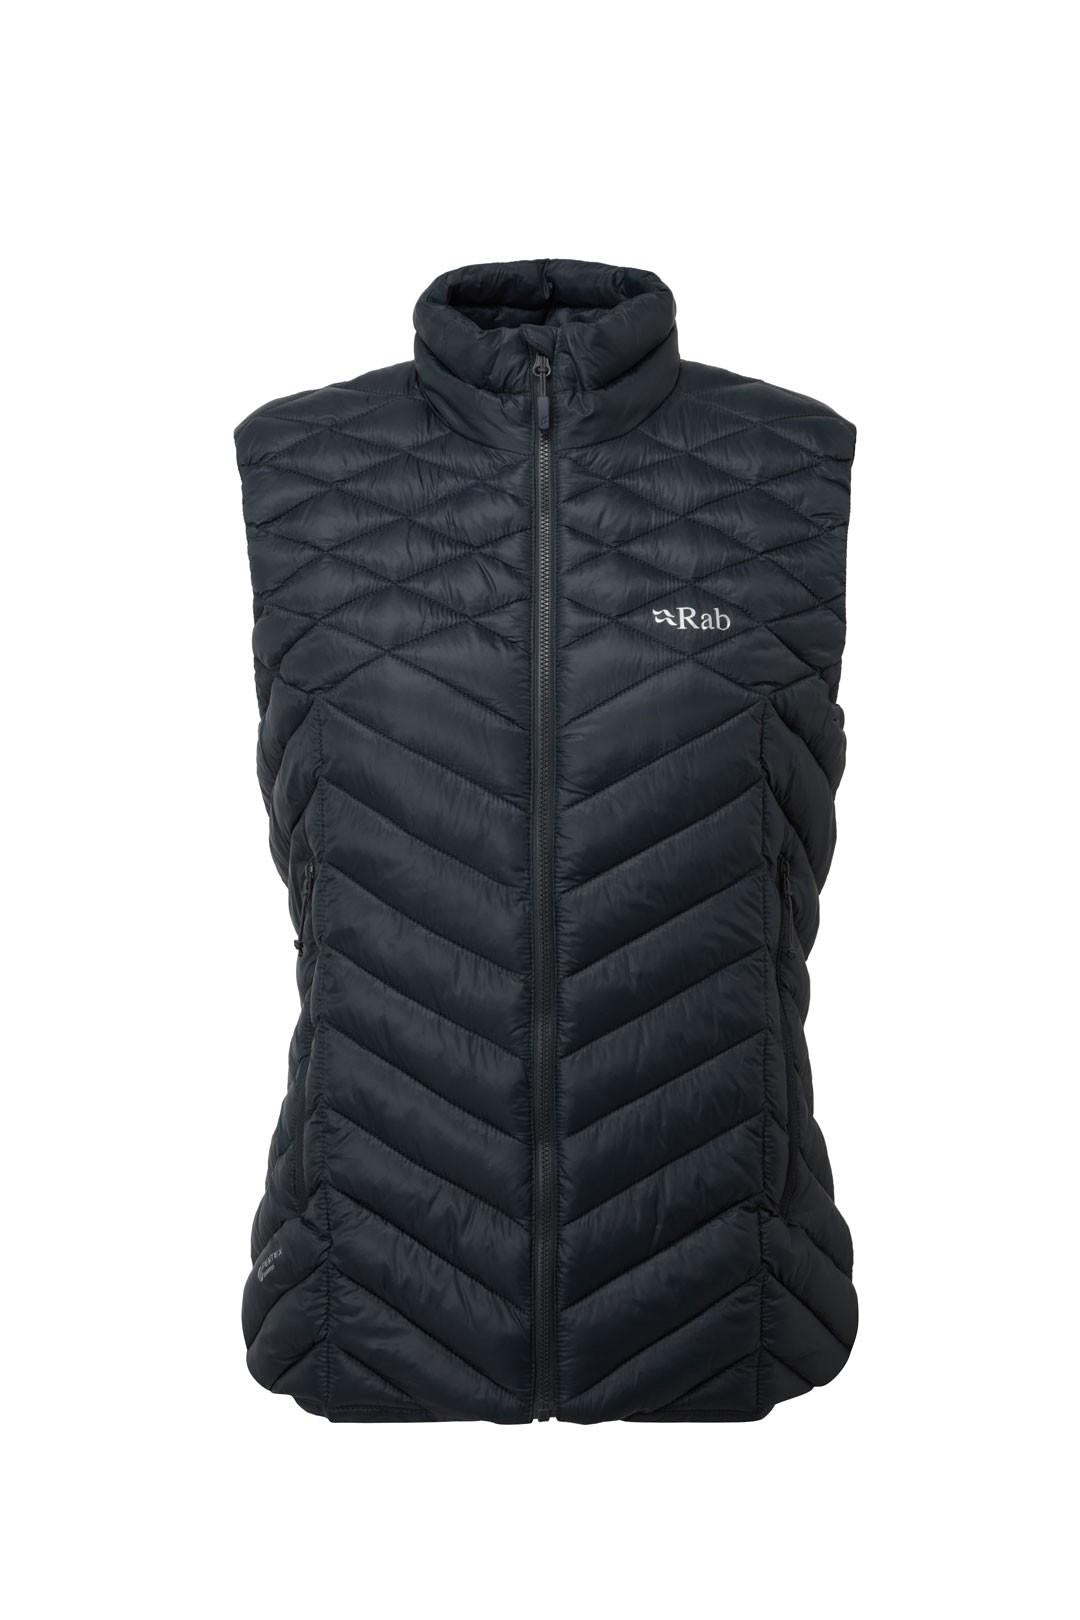 Rab Altus Down Vest for Ladies in Beluga